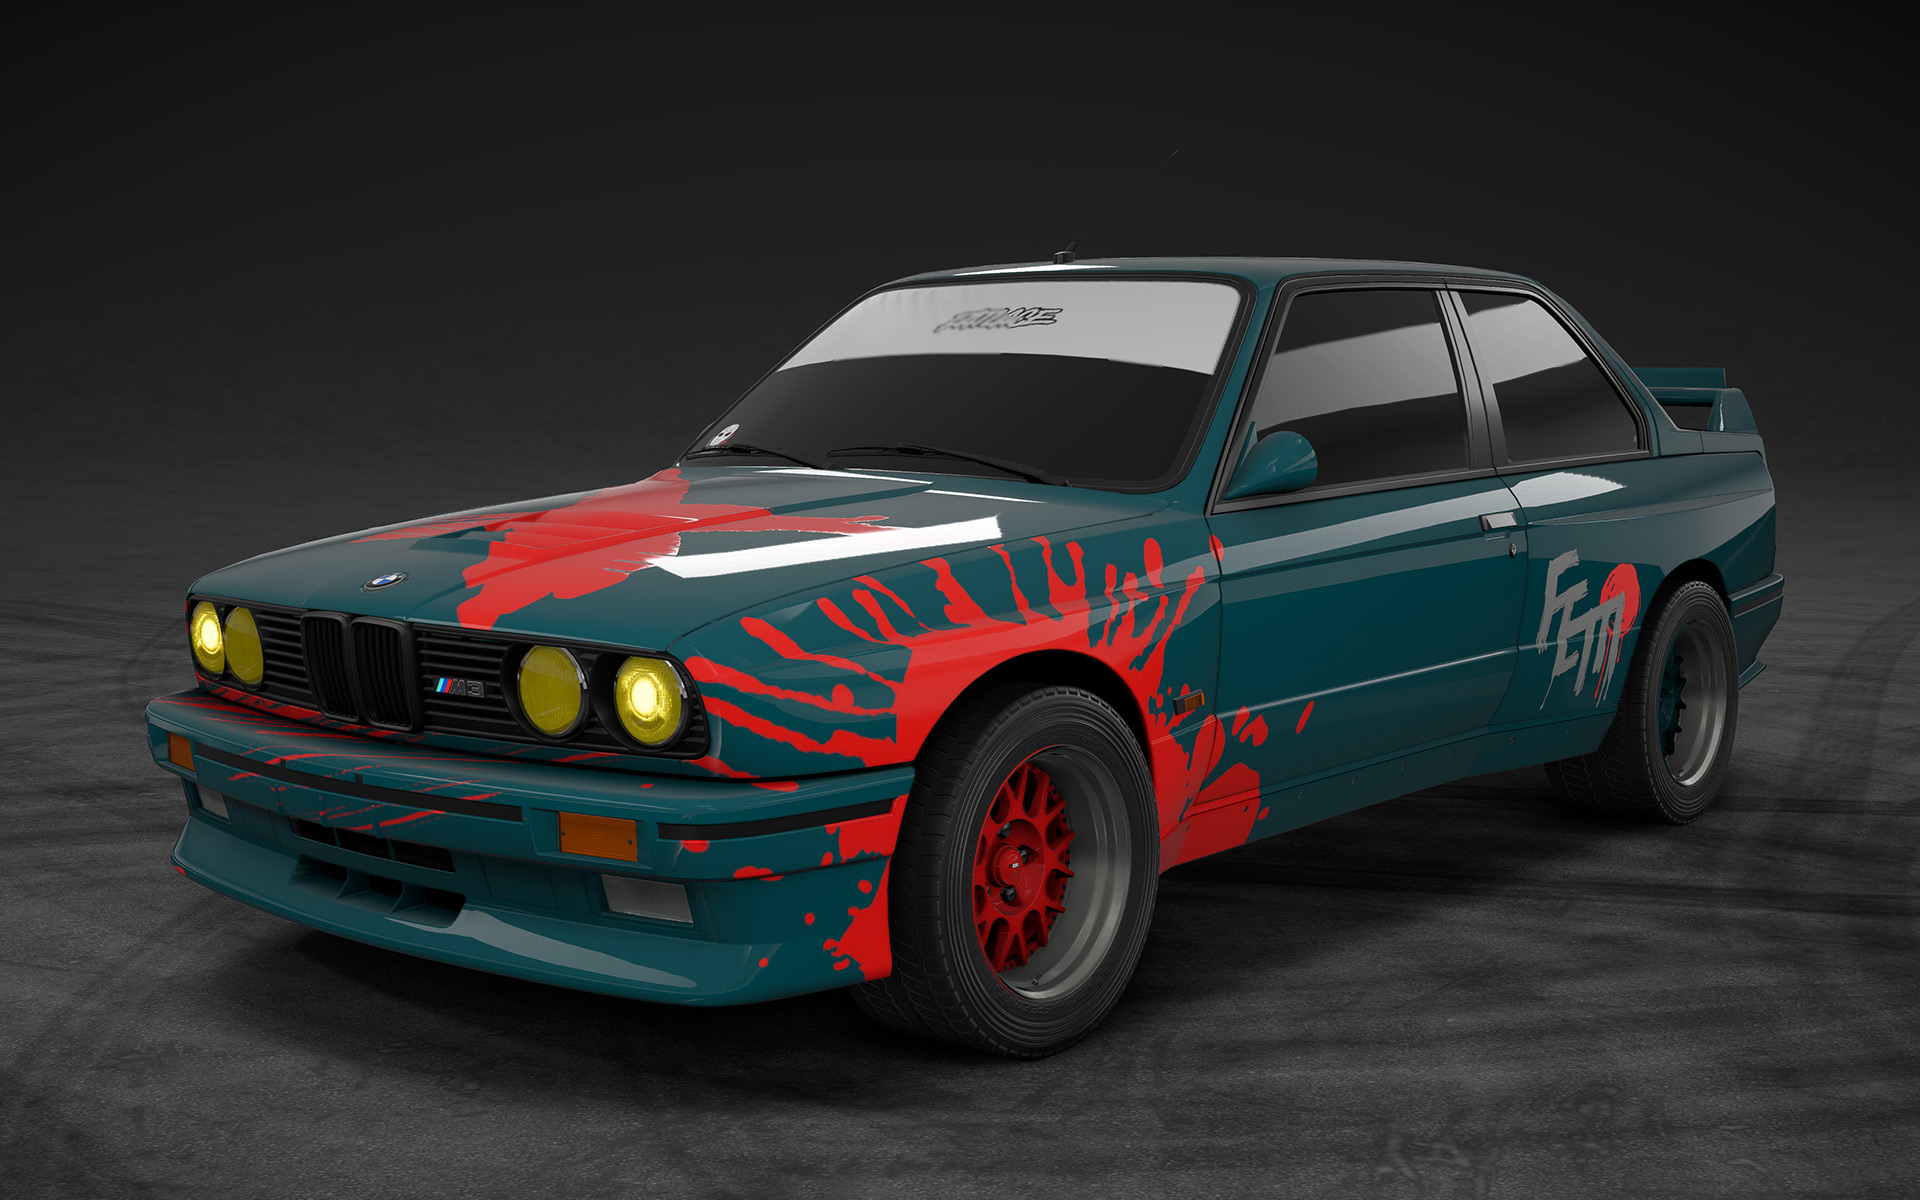 BMW M3 in Need for Speed Payback